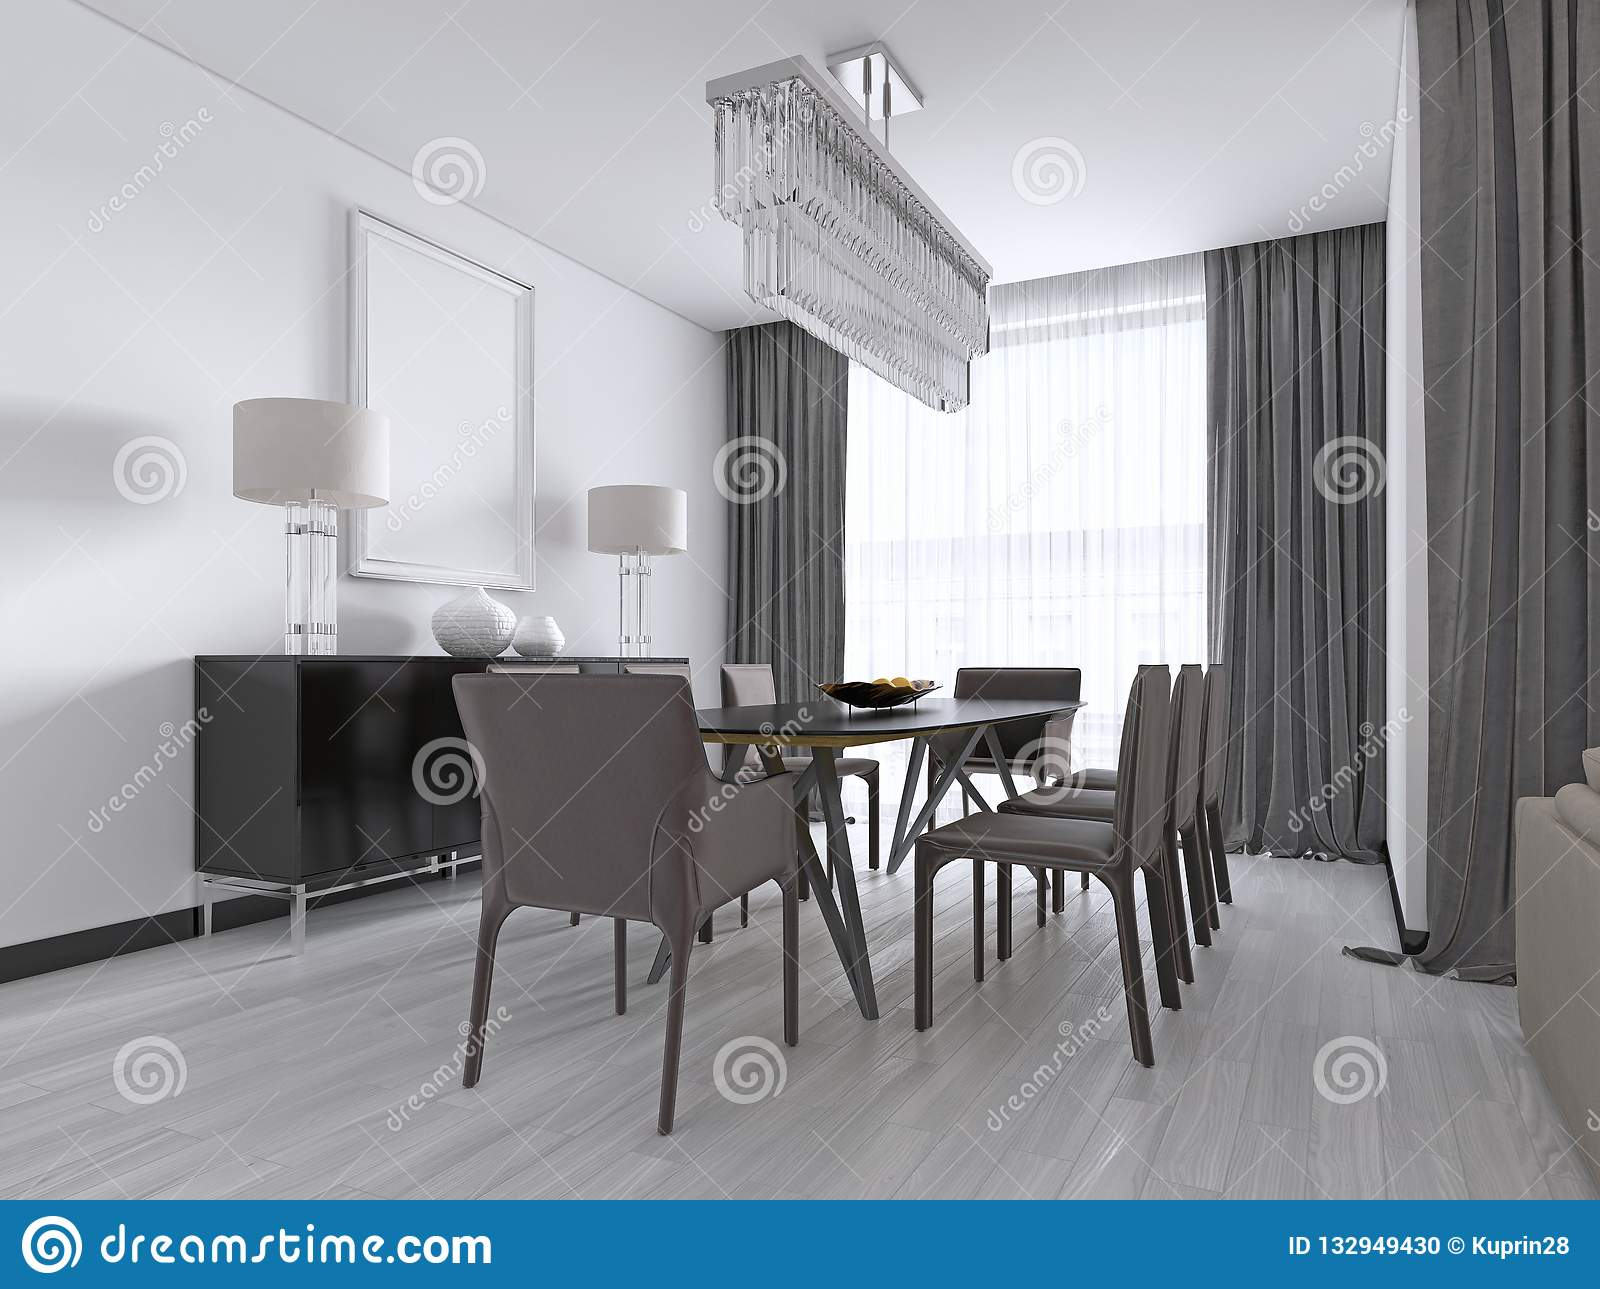 Contemporary Dining Room With A Large Rectangular Dining